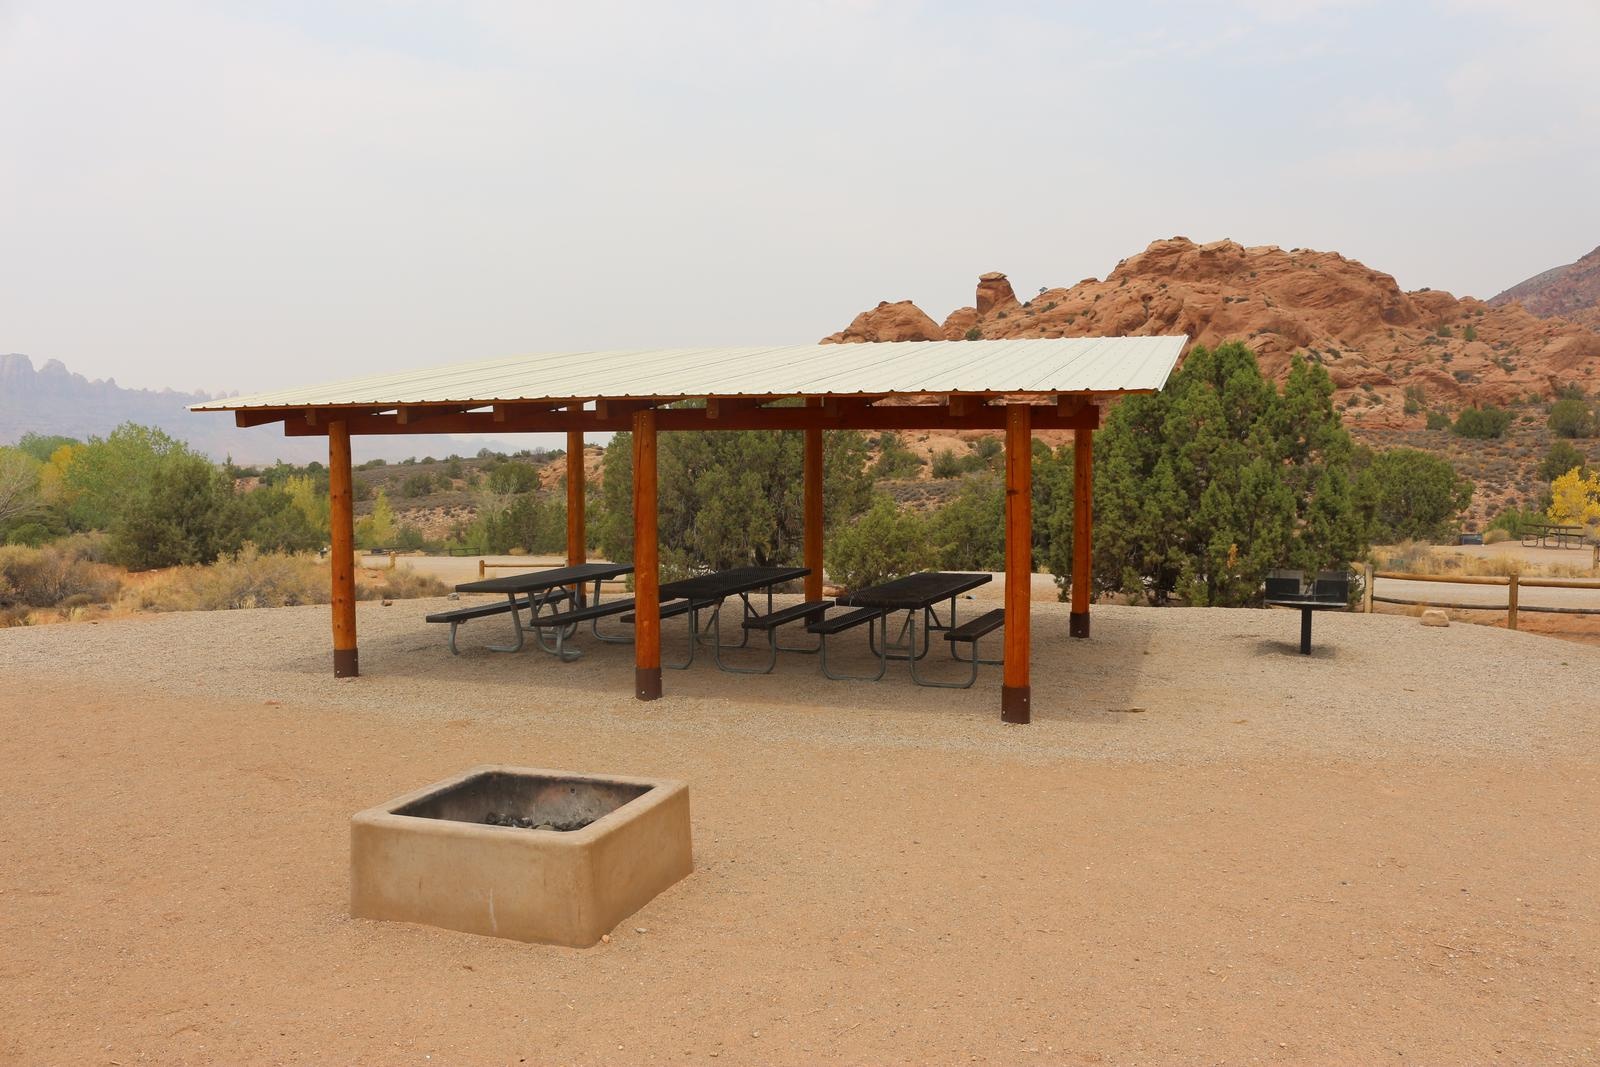 Ken's Lake Group Site B shade shelter, picnic tables, standing grill, and fire pit area.